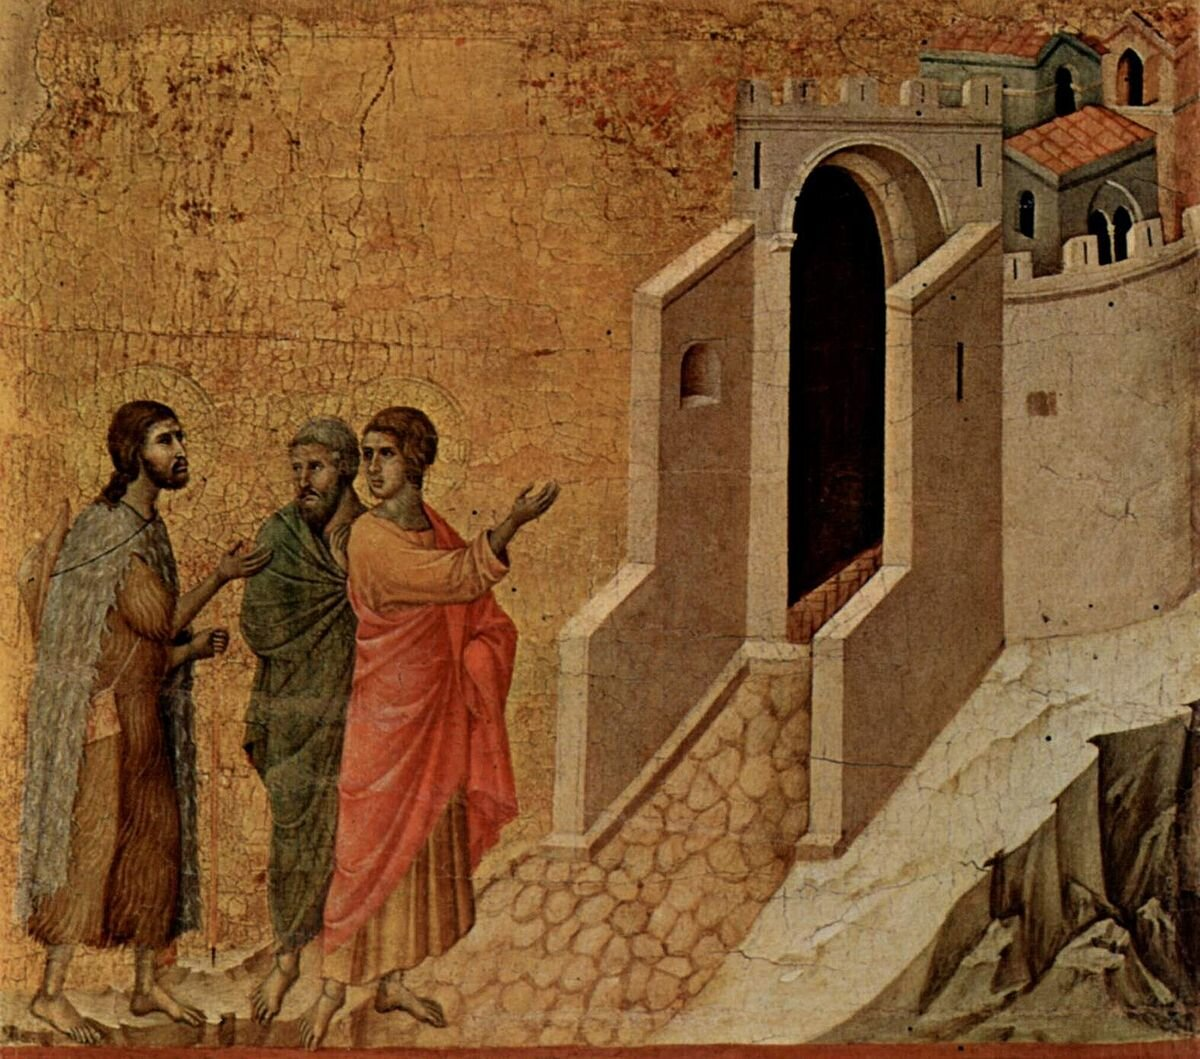 Image credit: Jesus and the two disciples On the Road to Emmaus, by Duccio, 1308–1311, Museo dell'Opera del Duomo, Siena